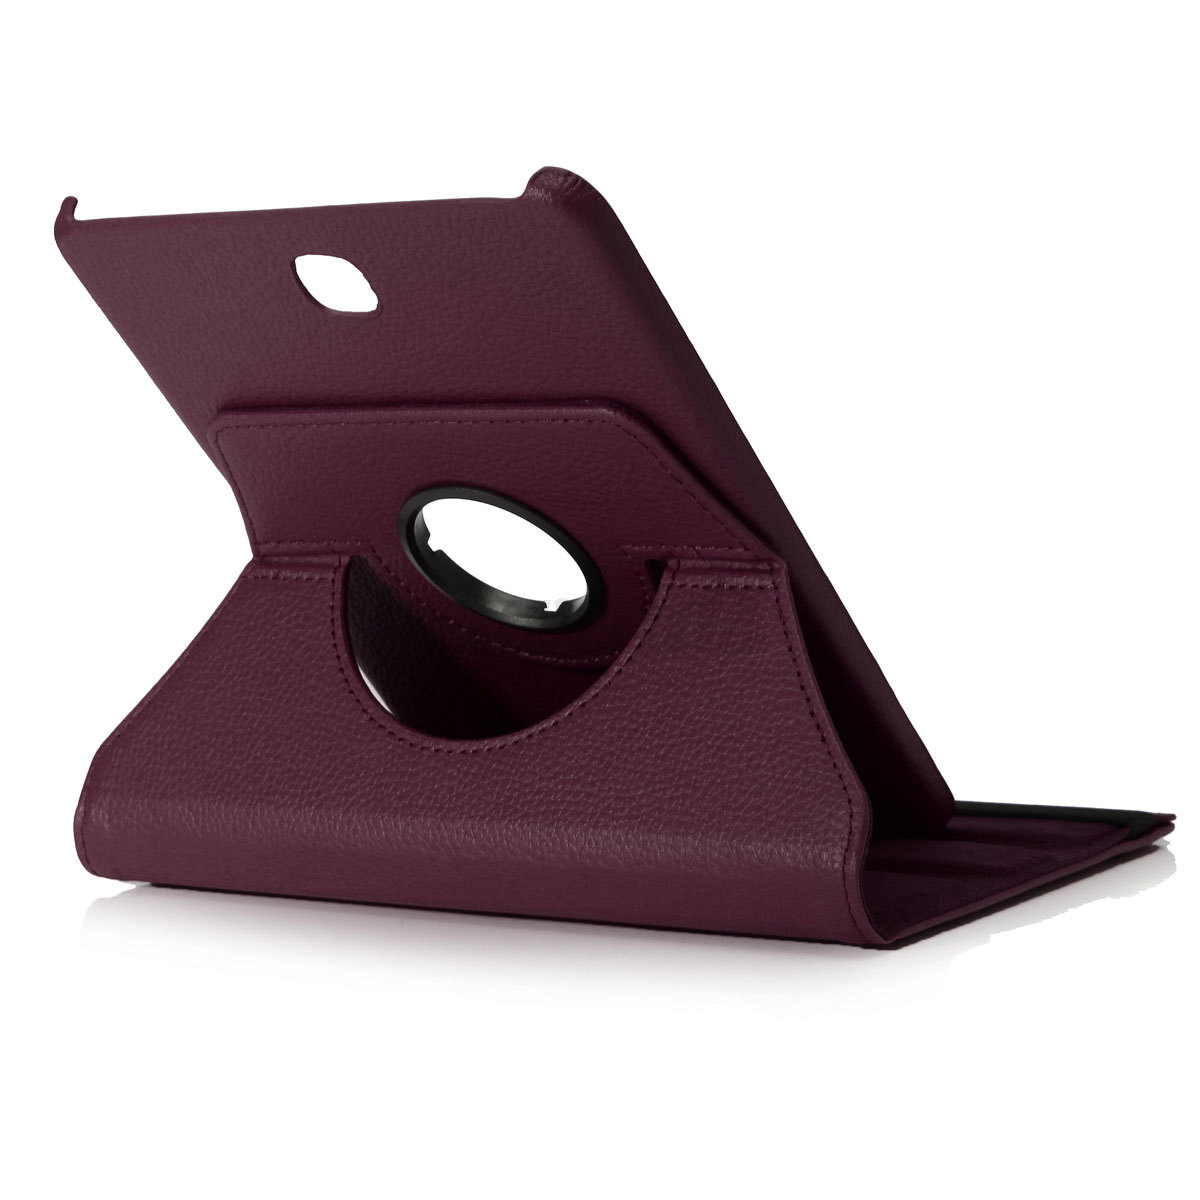 coque housse etui case smart cover pr samsung galaxy tab